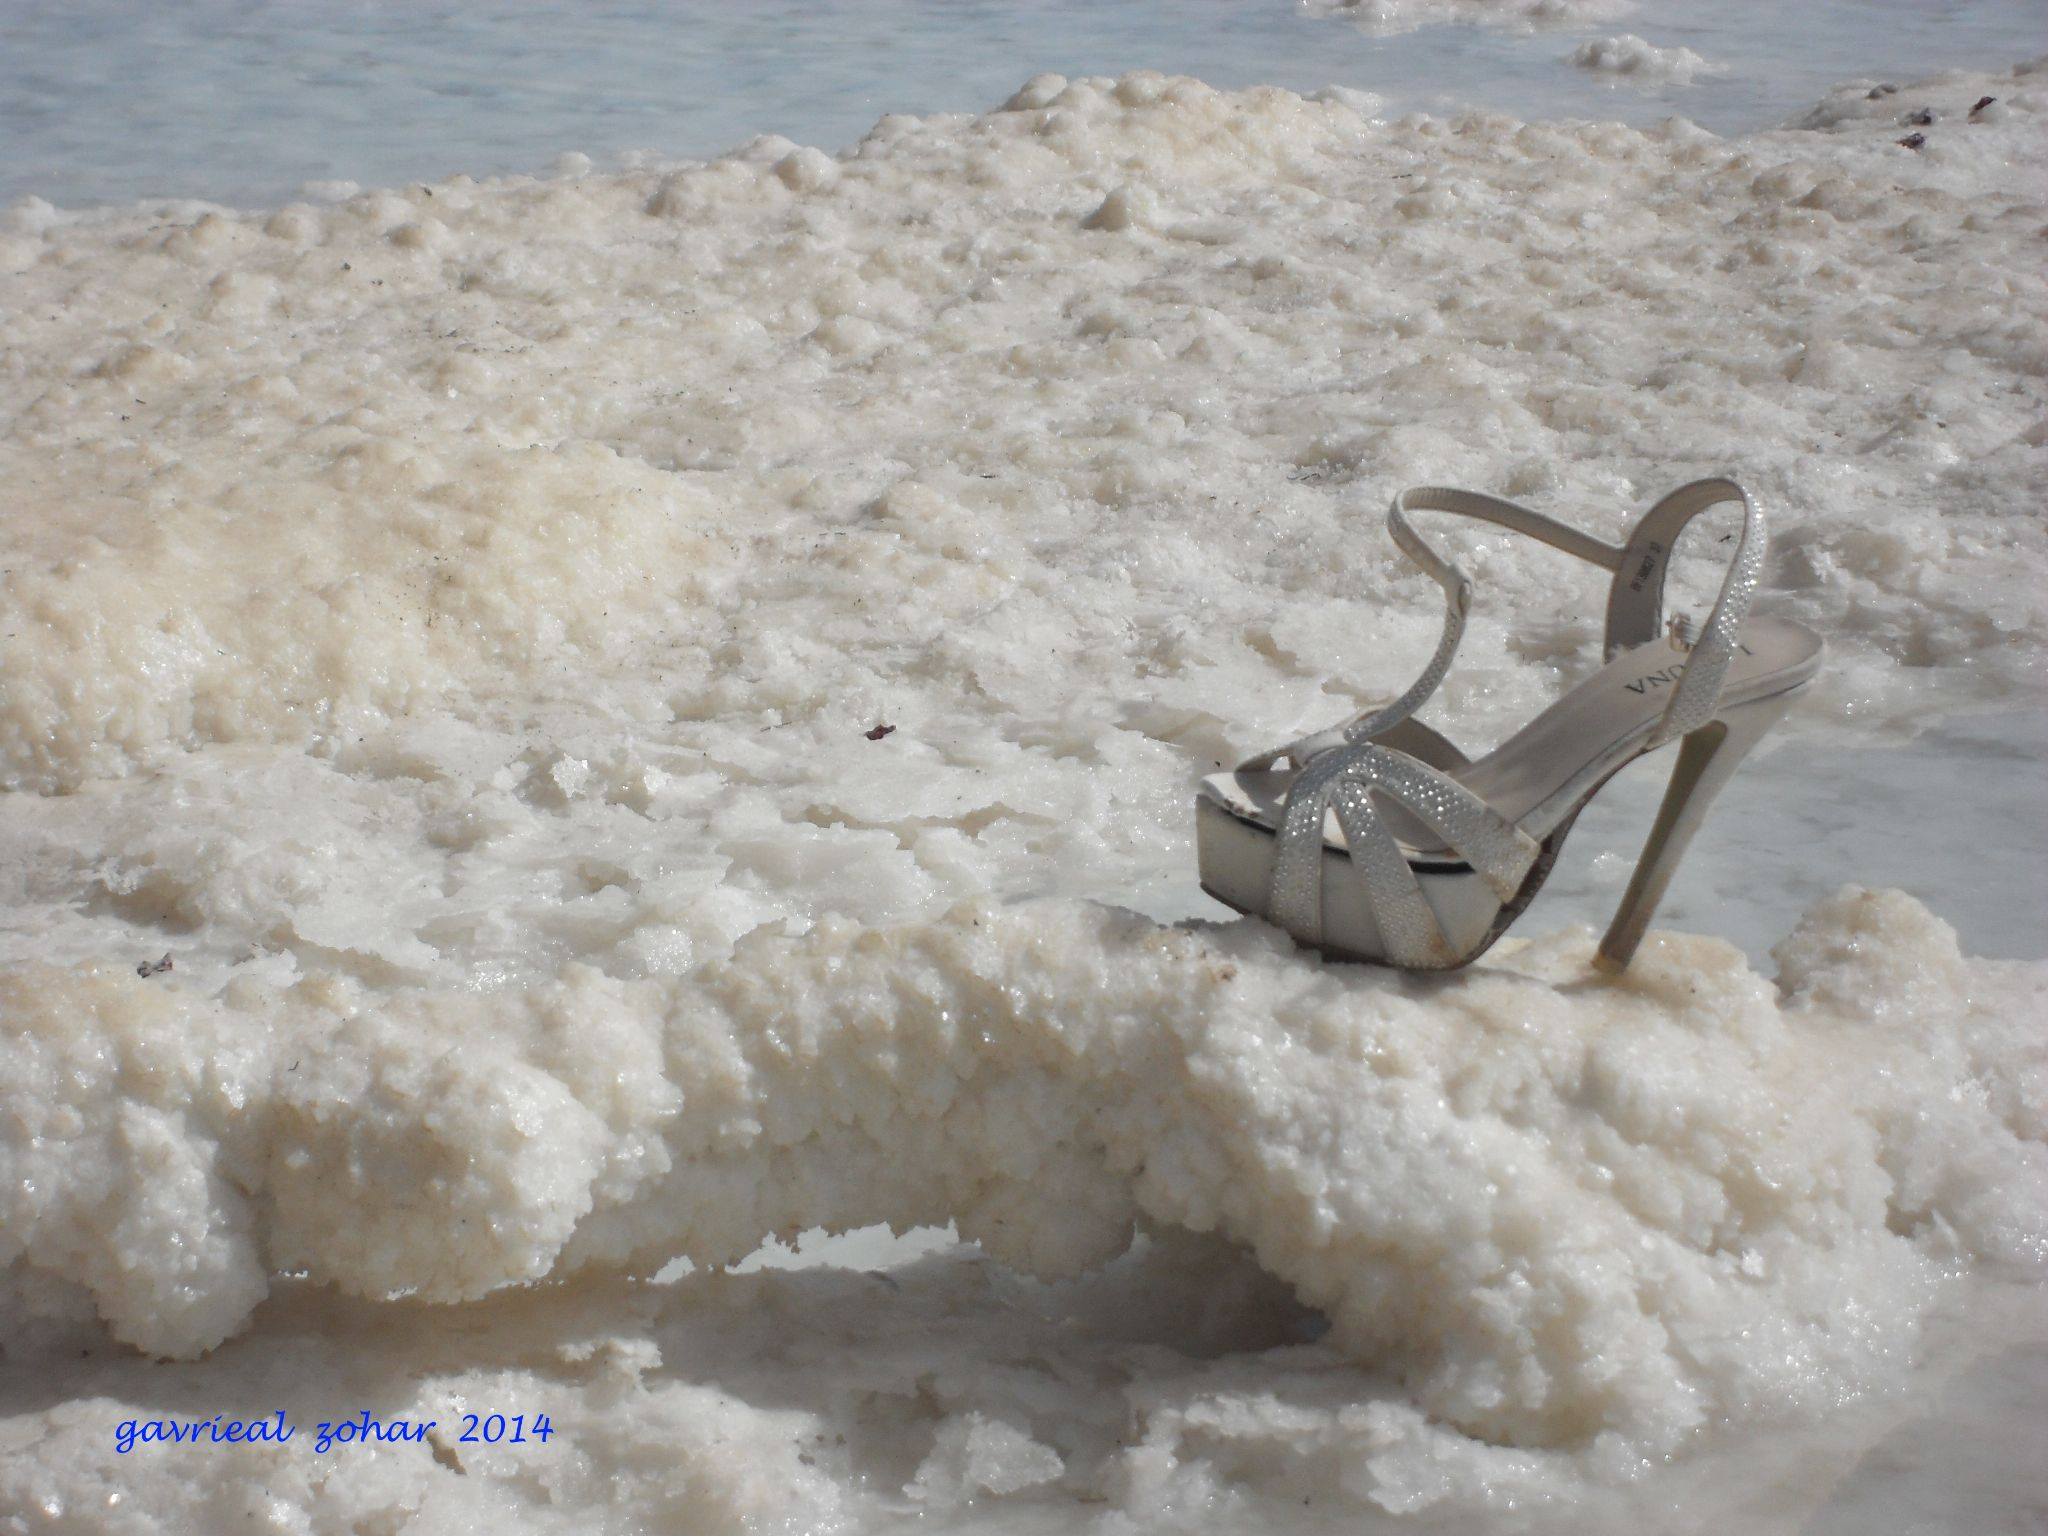 Sinderela shoe on the salt of the dead sea by gavriealzohar